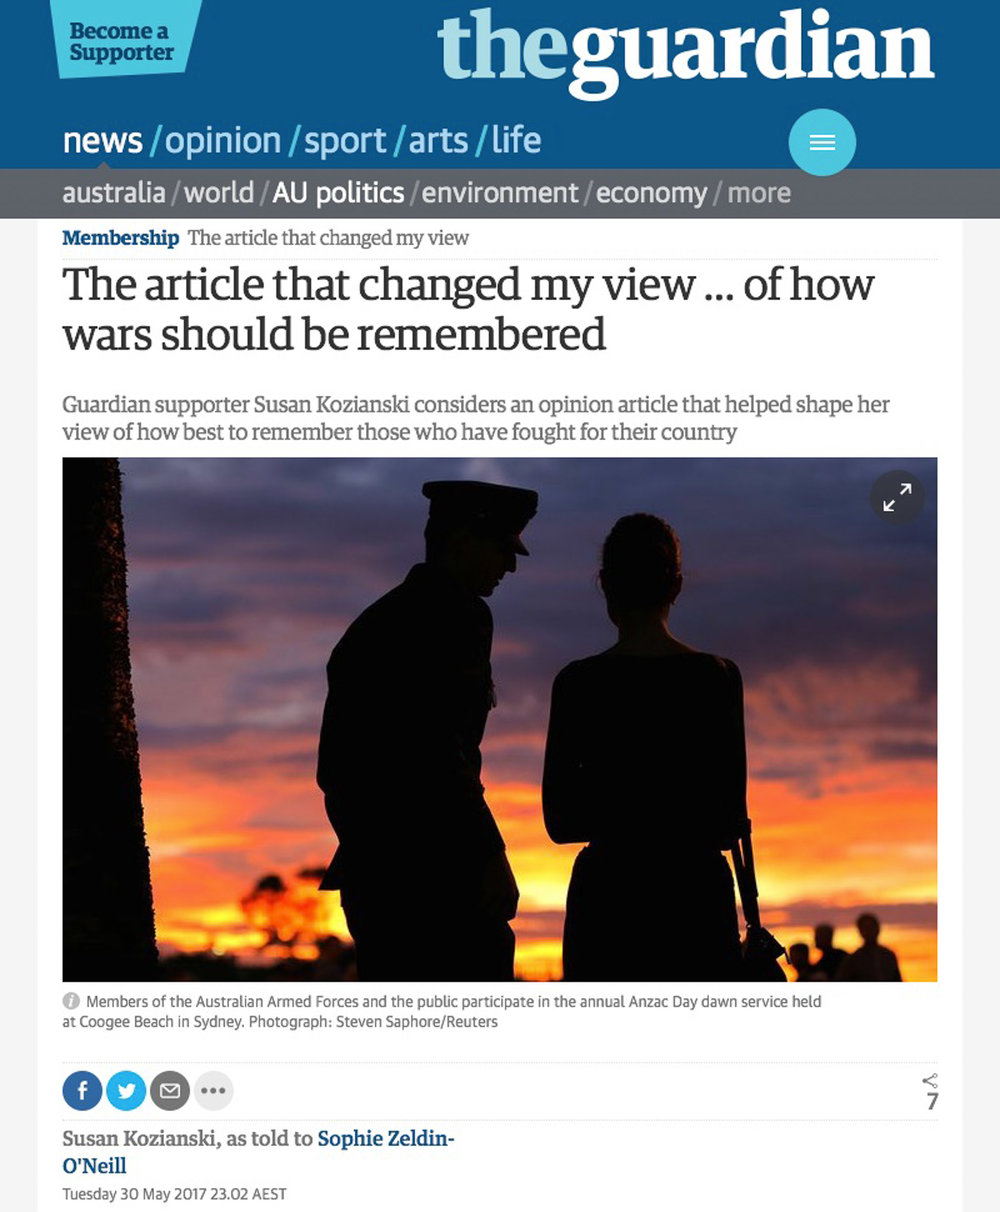 Guardian supporter Susan Kozianski considers an opinion article that helped shape her view of how best to remember those who have fought for their country.